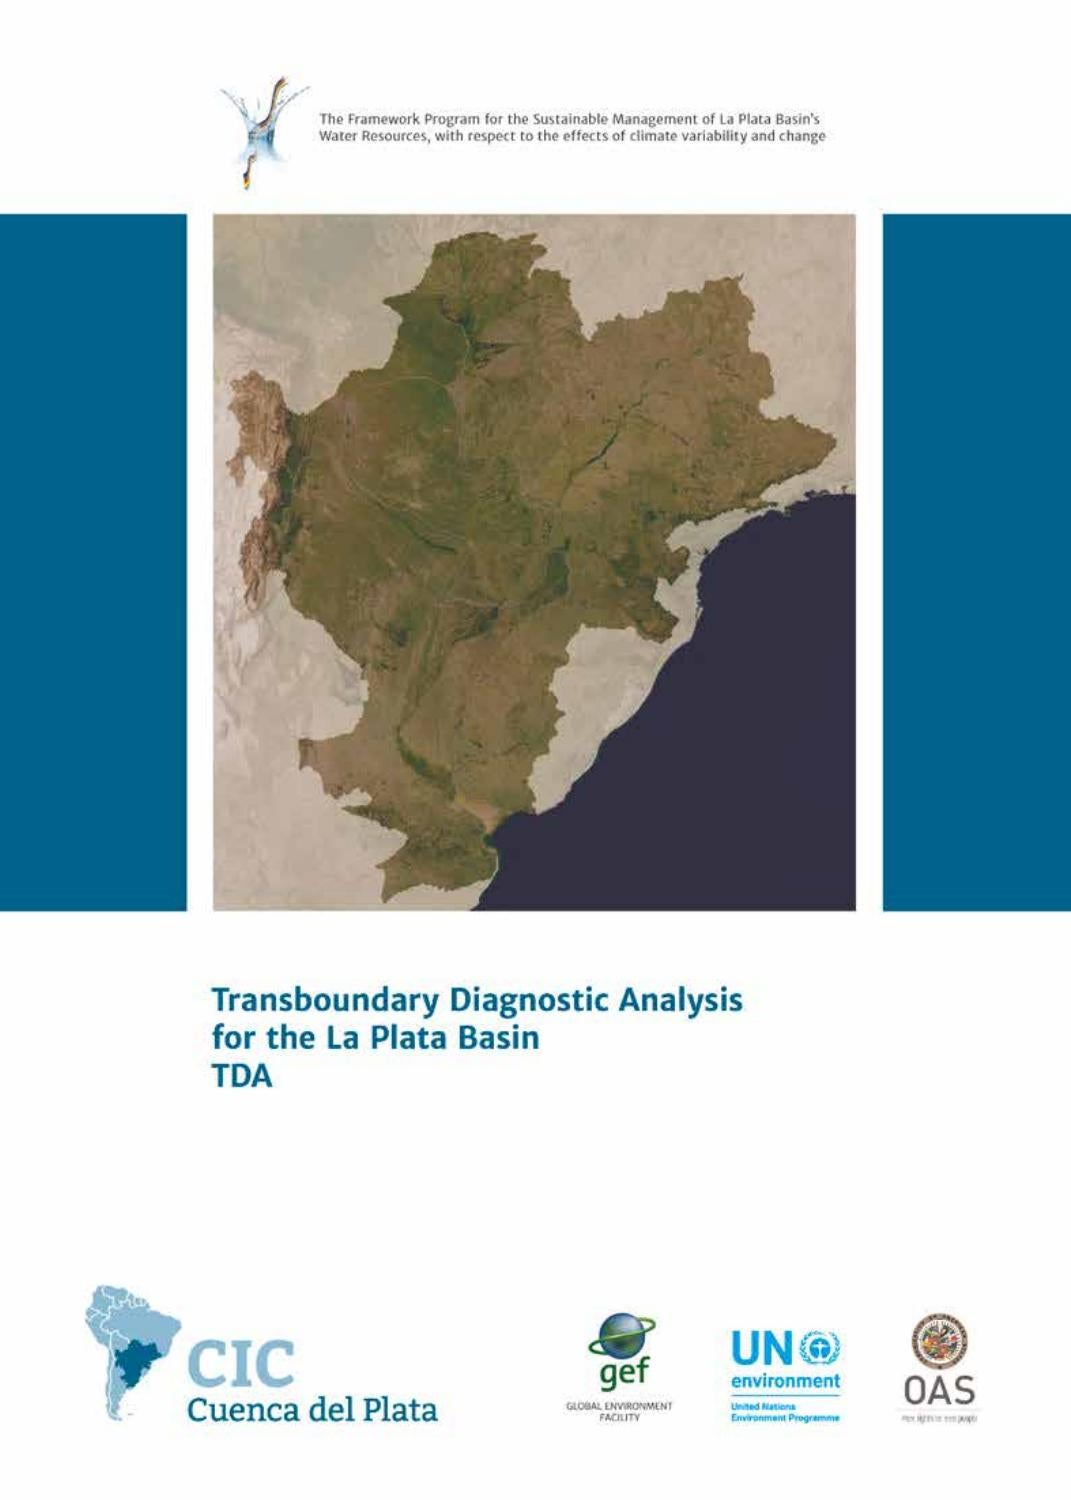 Transboundary Diagnostic Analysis for the La Plata Basin TDA